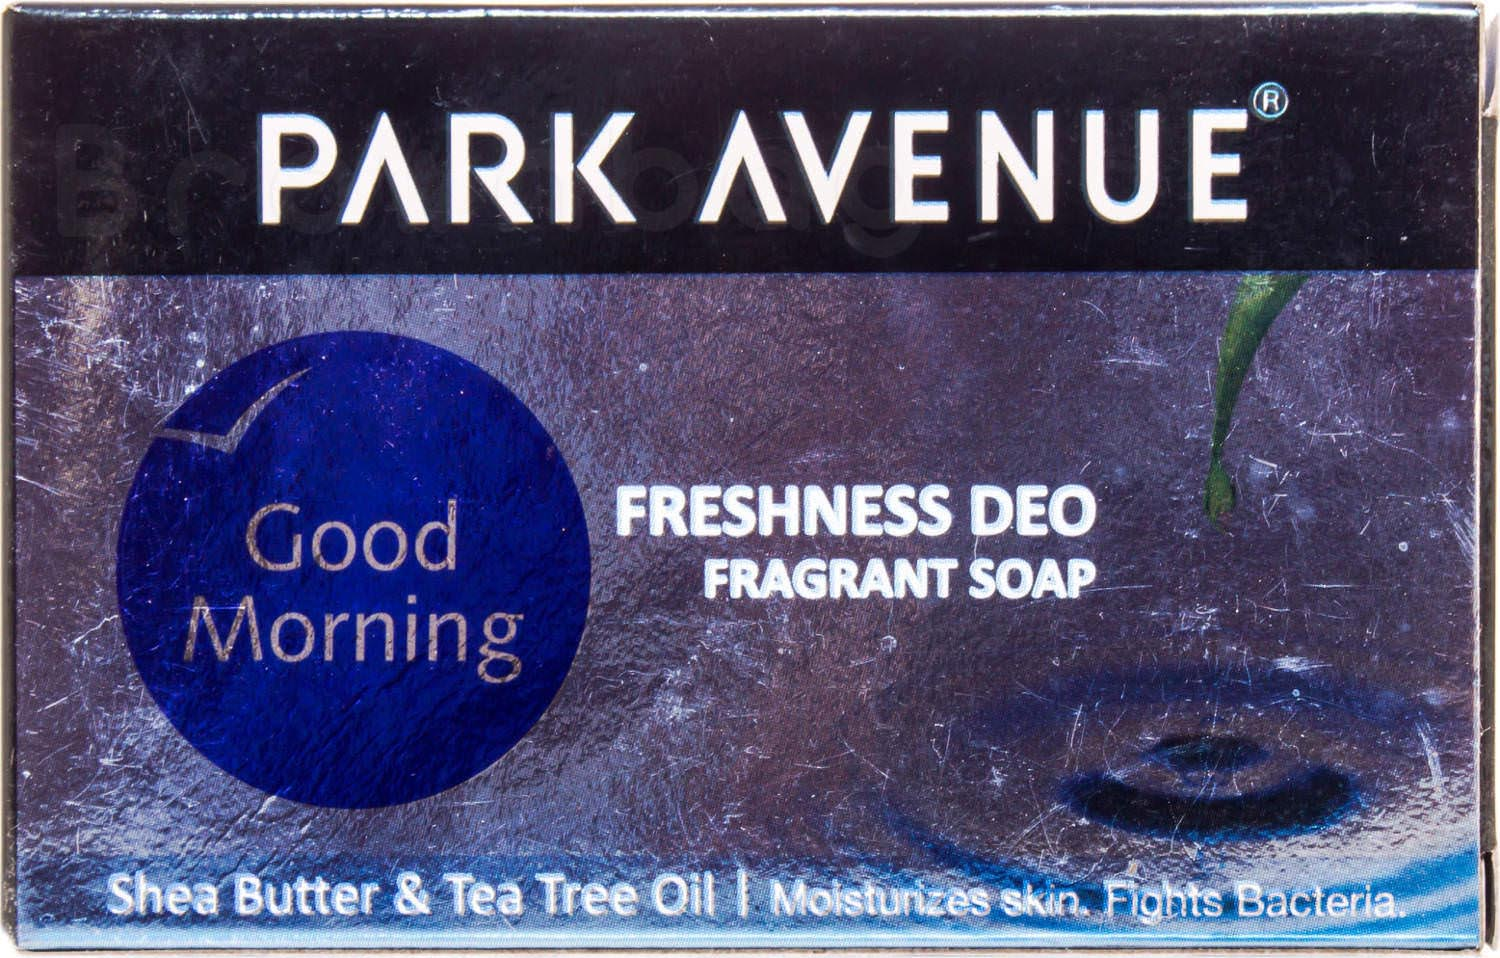 Park Avenue Good Morning Freshness Deo Fragrant Soap with Shea Butter & Tea Tree Oil